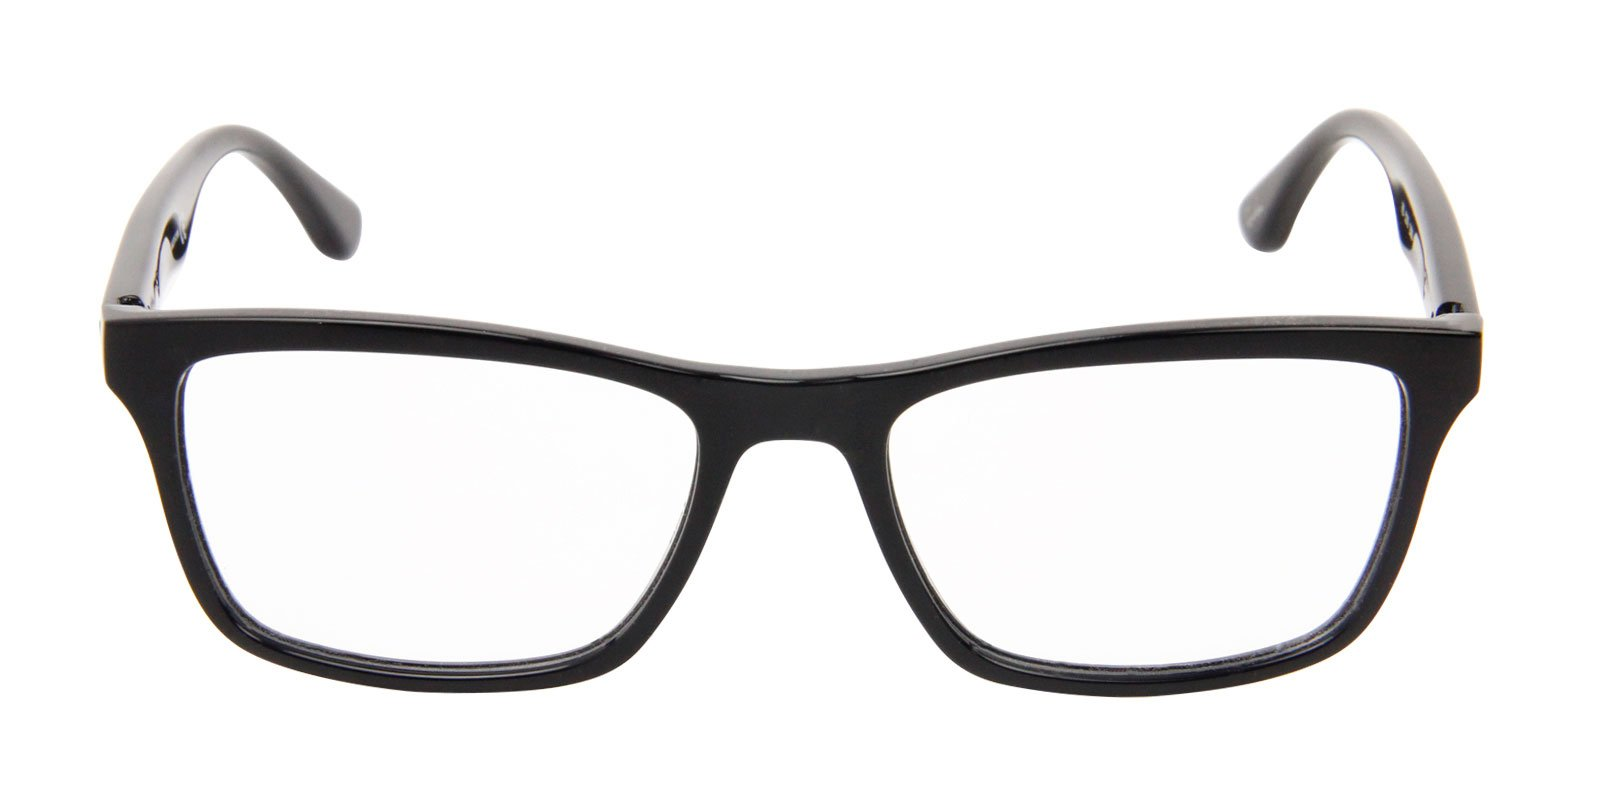 Ray Ban Rx - RX5279 Black Rectangular Men Eyeglasses - 55mm-Eyeglasses-Designer Eyes